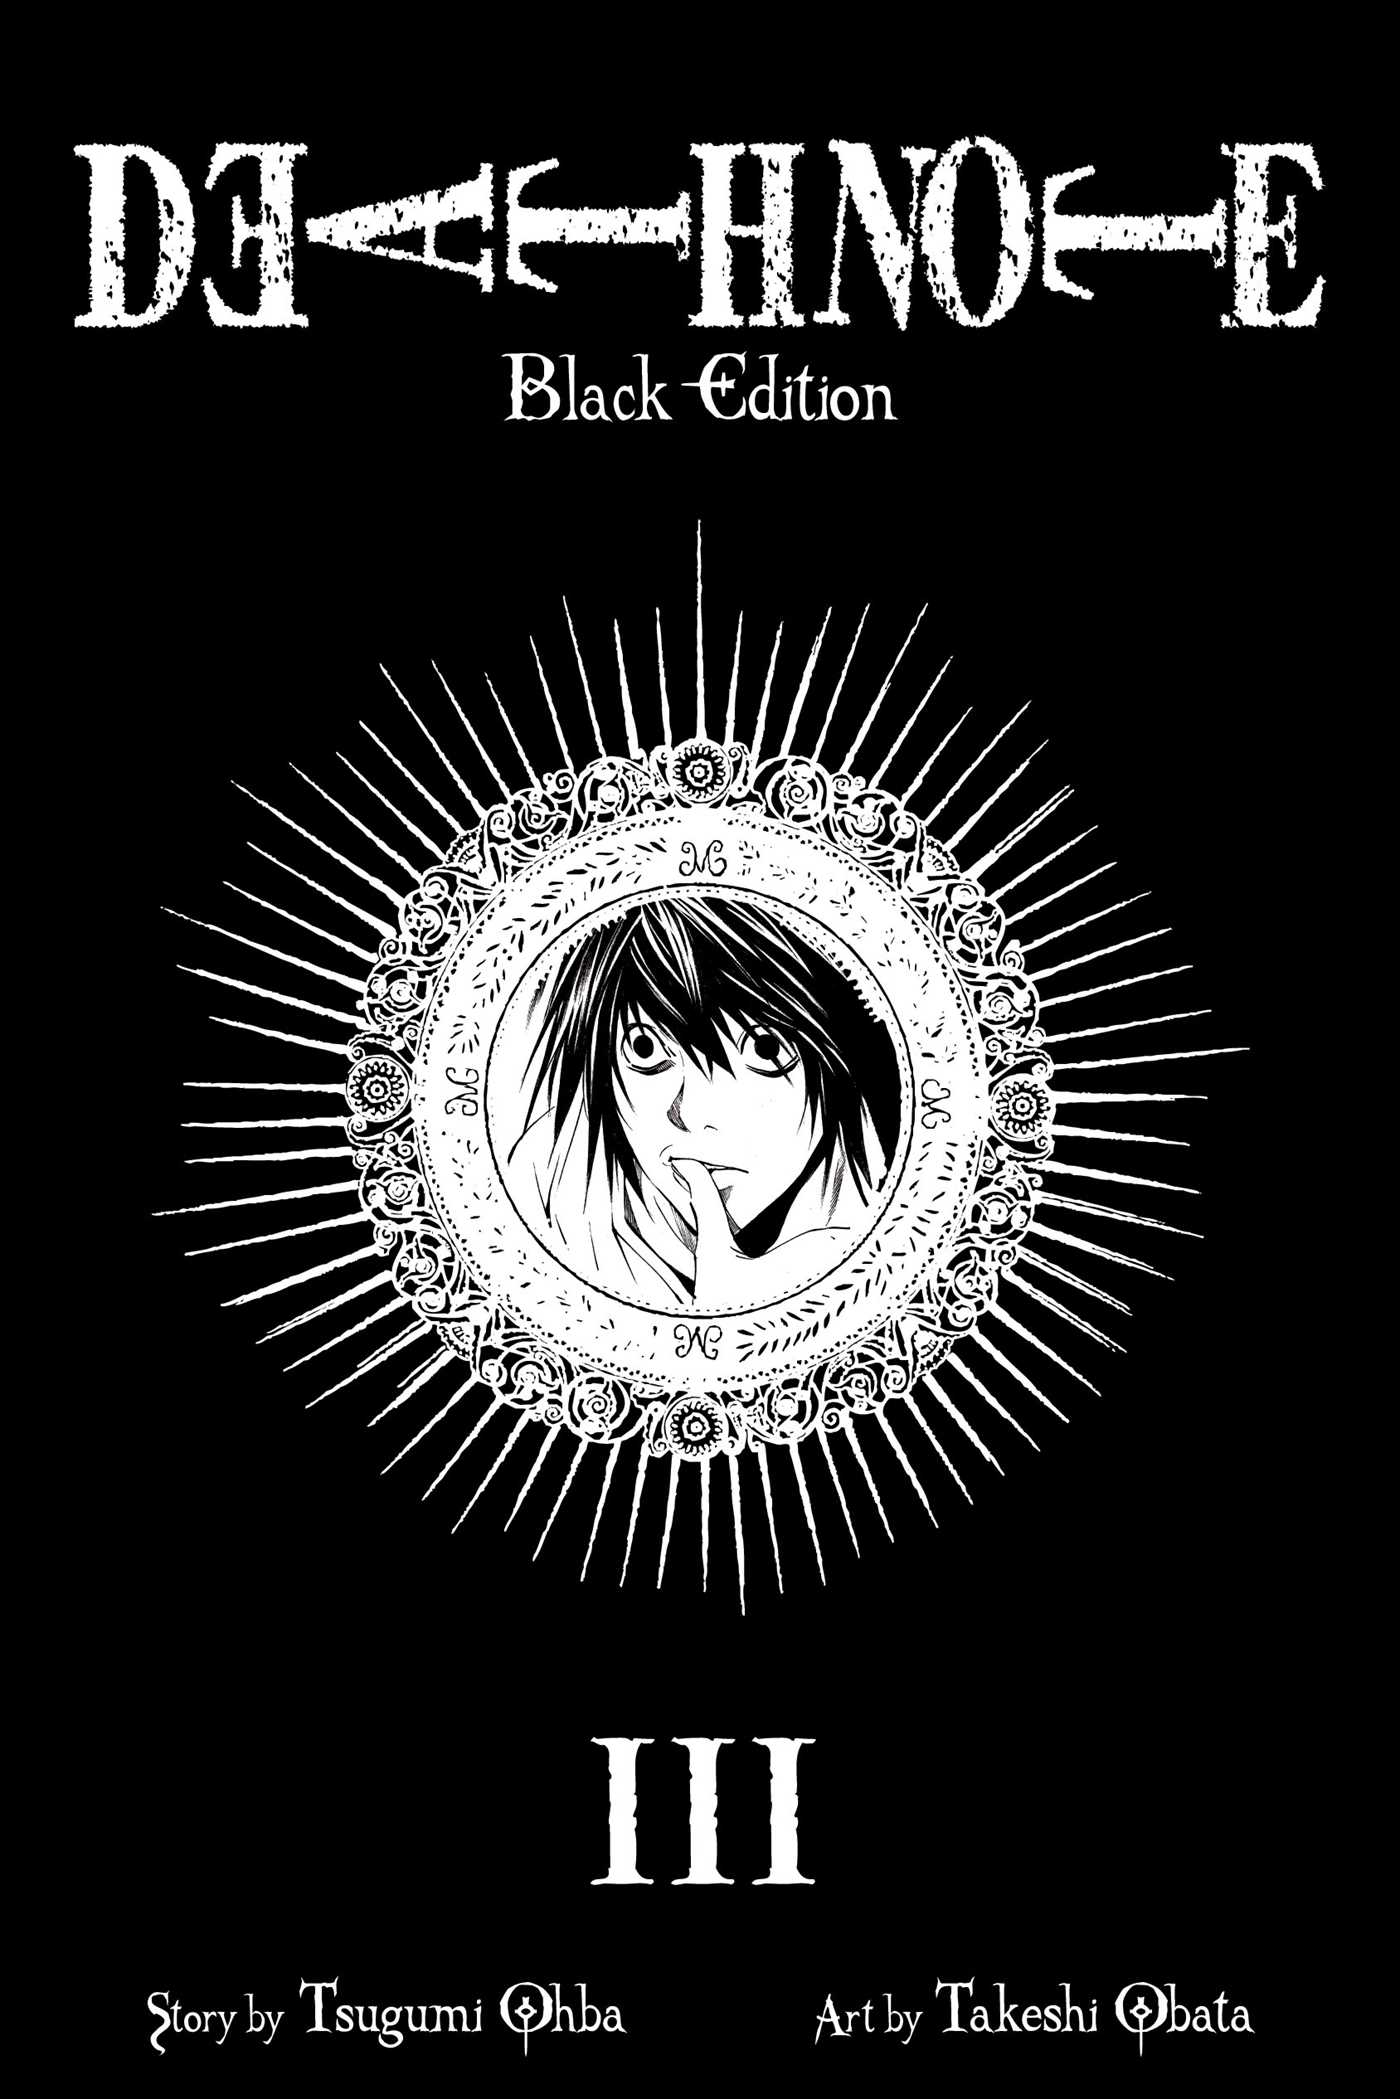 Death-note-black-edition-vol-3-9781421539669_hr